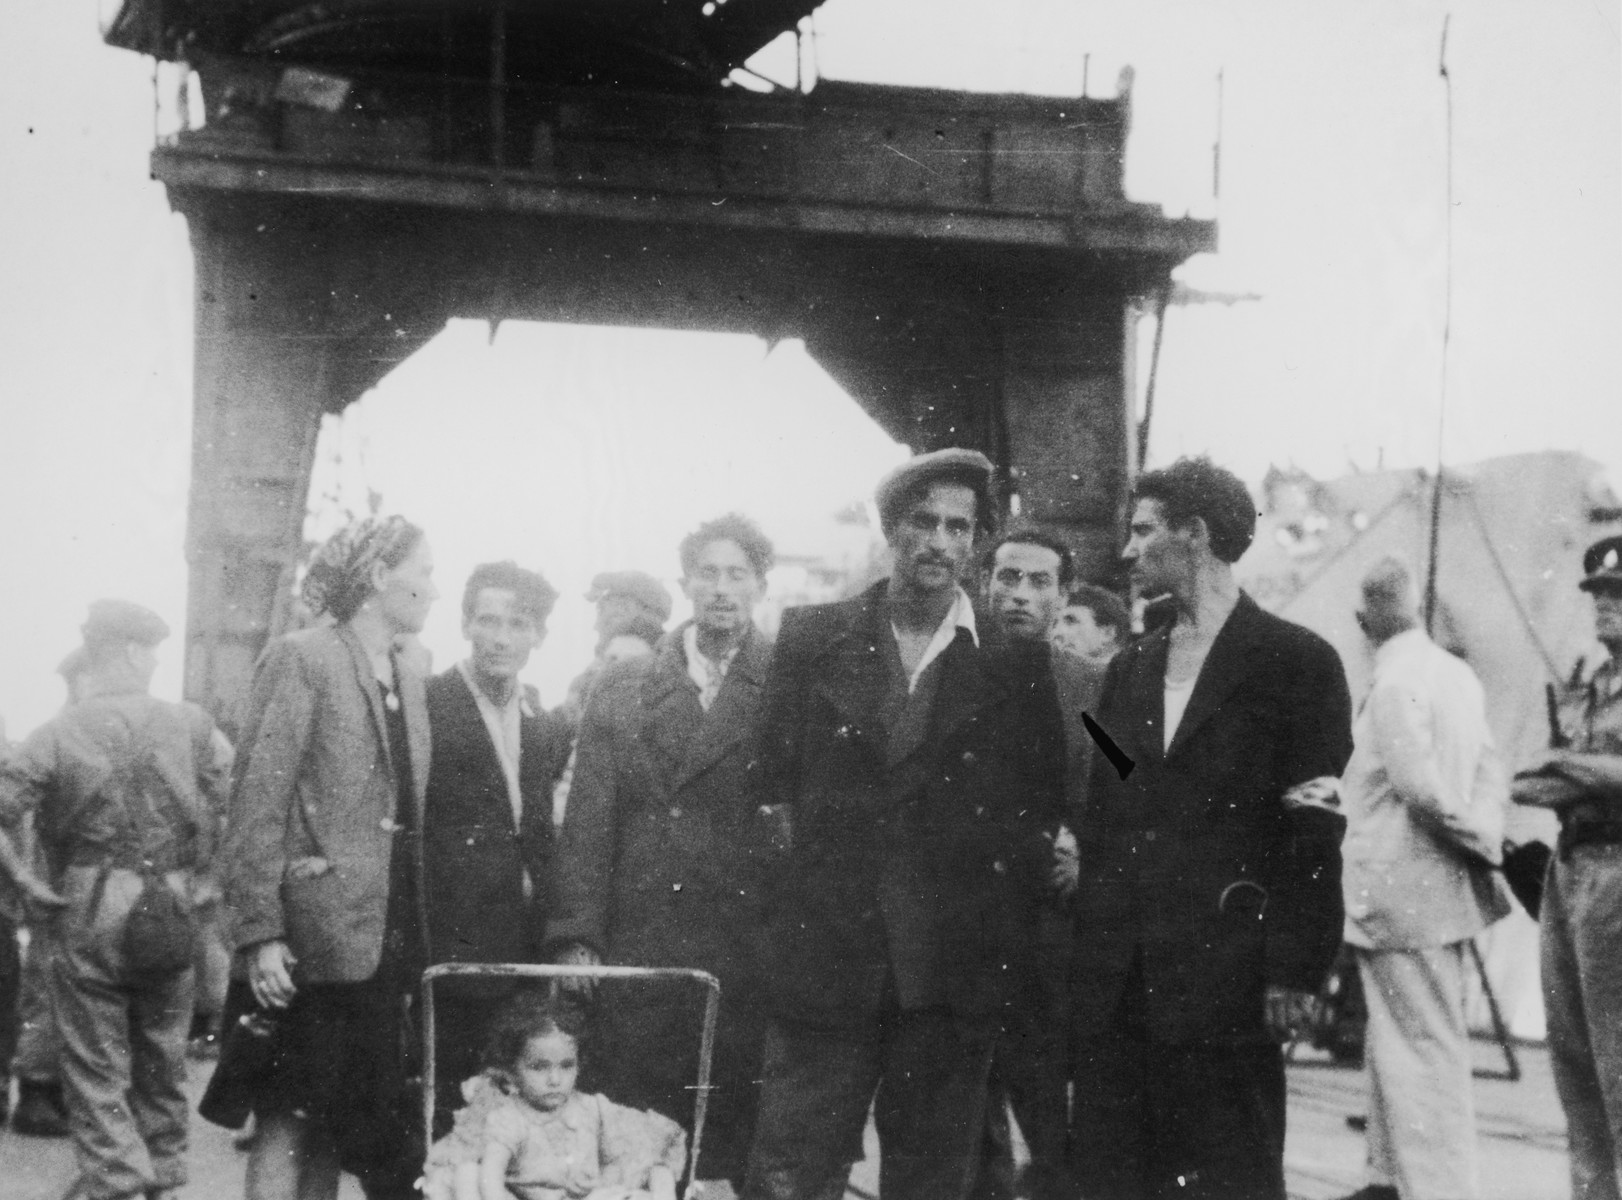 Passengers from the illegal immigrant ship, Exodus 1947, wait on the pier in Haifa harbor to be transferred to British ships.    Pictured at the right (in the white suit) is a United Nations official who was present to observe the transfer process.